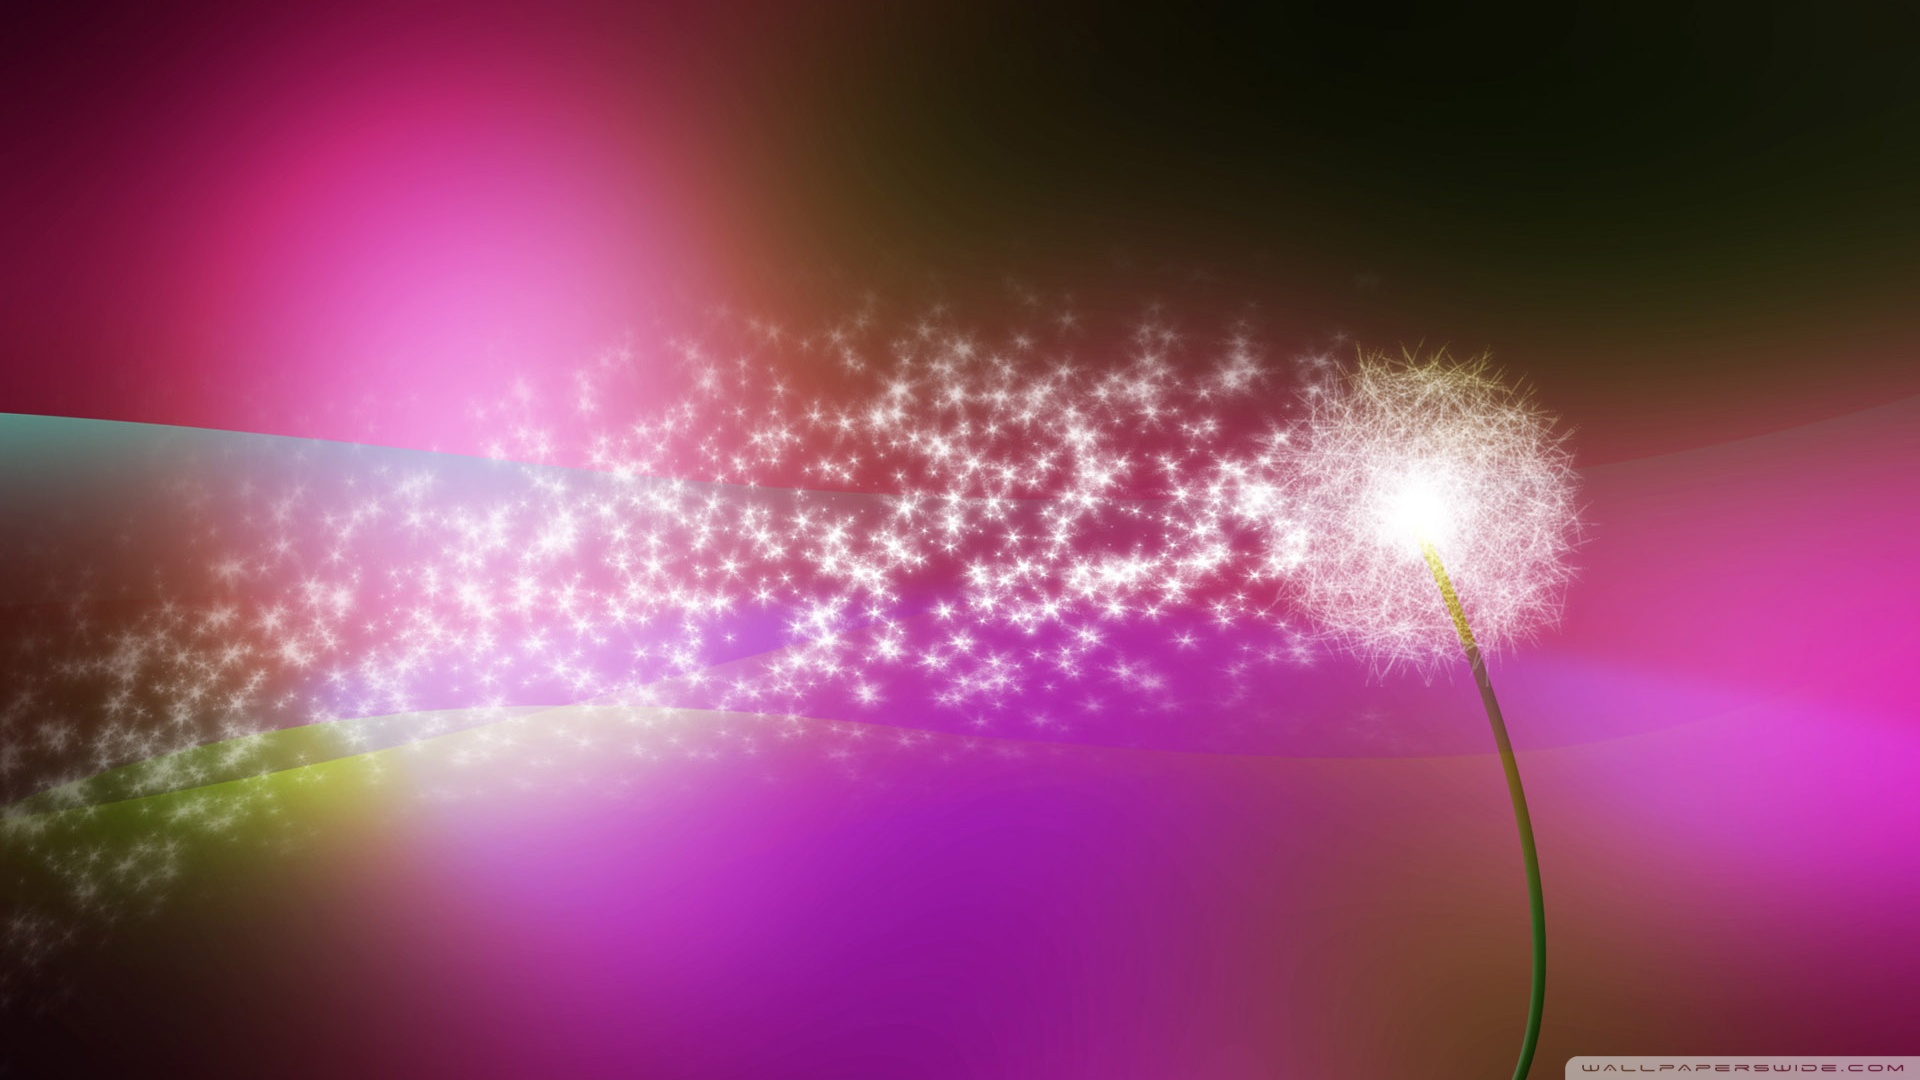 Dandelion Blowing In The Wind Wallpaper 1920x1080 Dandelion Blowing 1920x1080